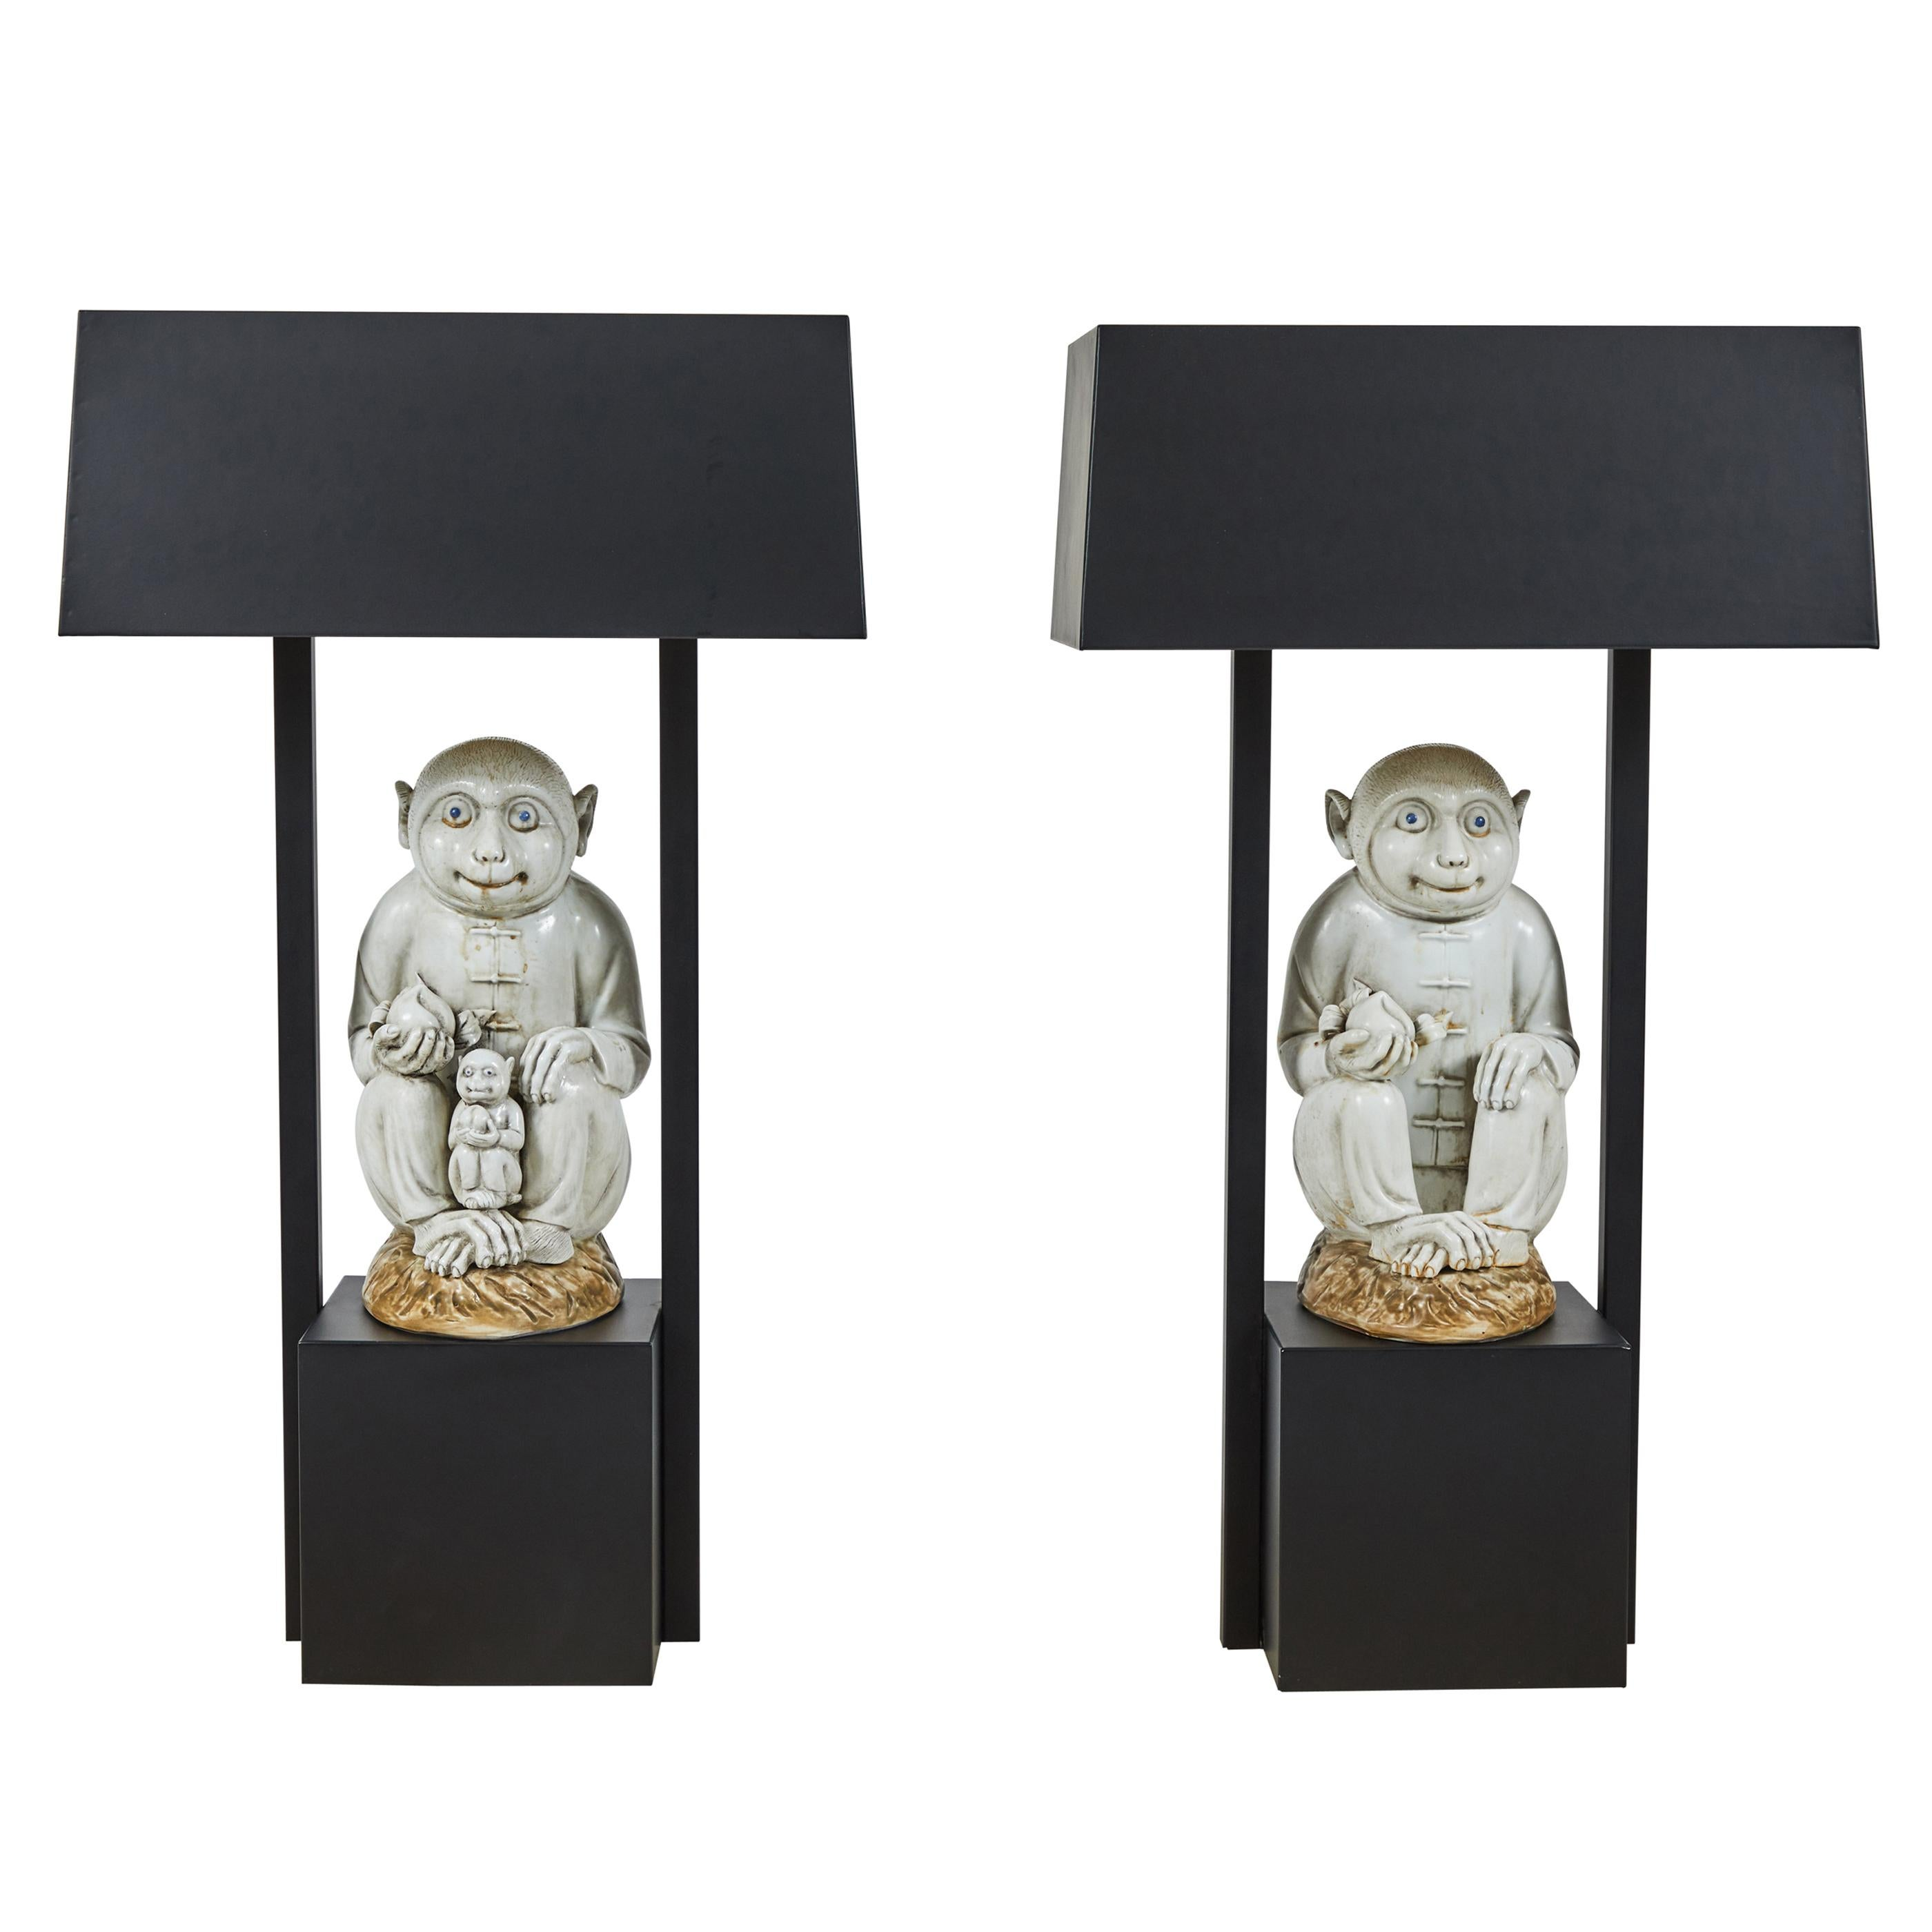 Pair of Table Lamps Featuring Chinese Monkeys Designed by Billy Haines